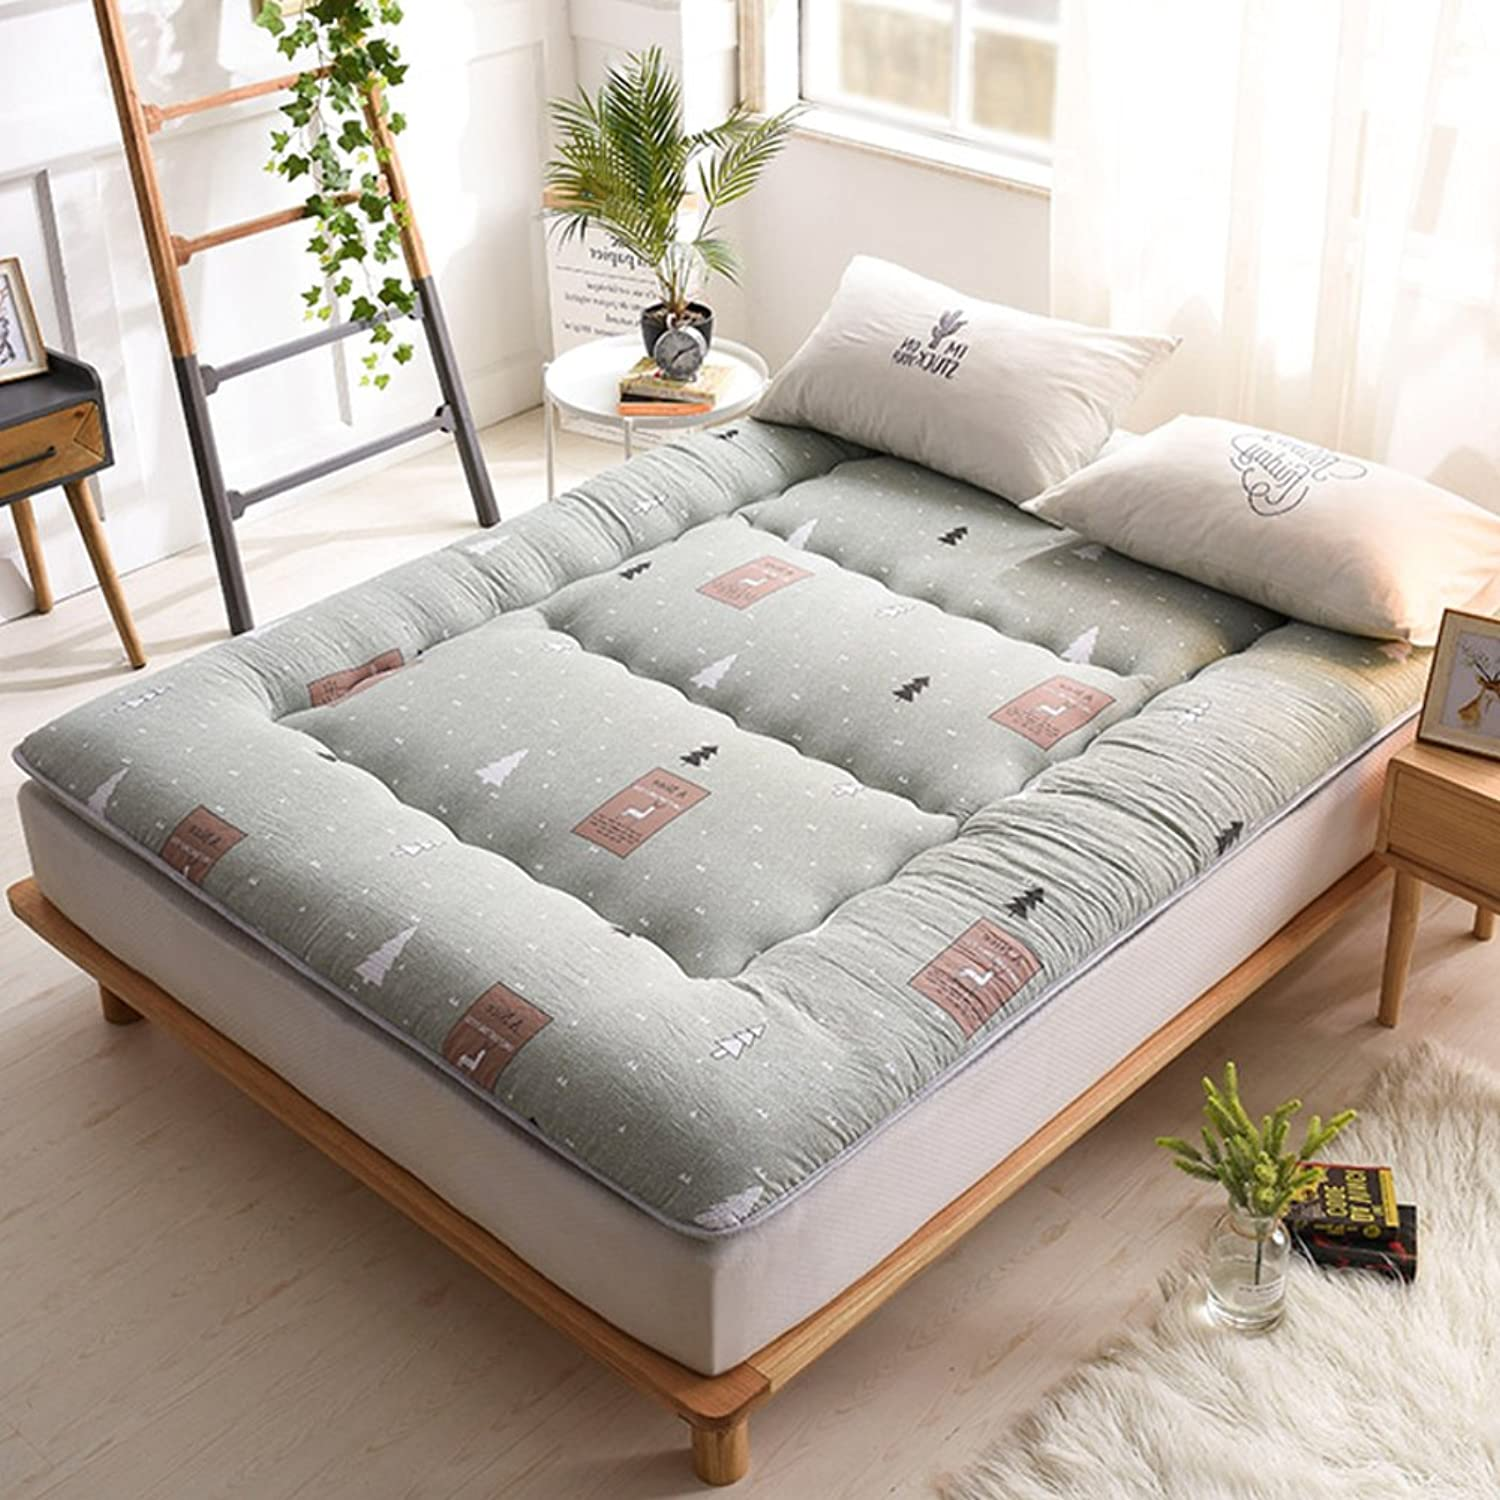 Washed Cotton Padded Mattress,Tatami Mattress Student Dormitory 1.5m1.8 Meters Bed Linen Double Mattress Portable Sleeping pad-A 90x200cm(35x79inch)